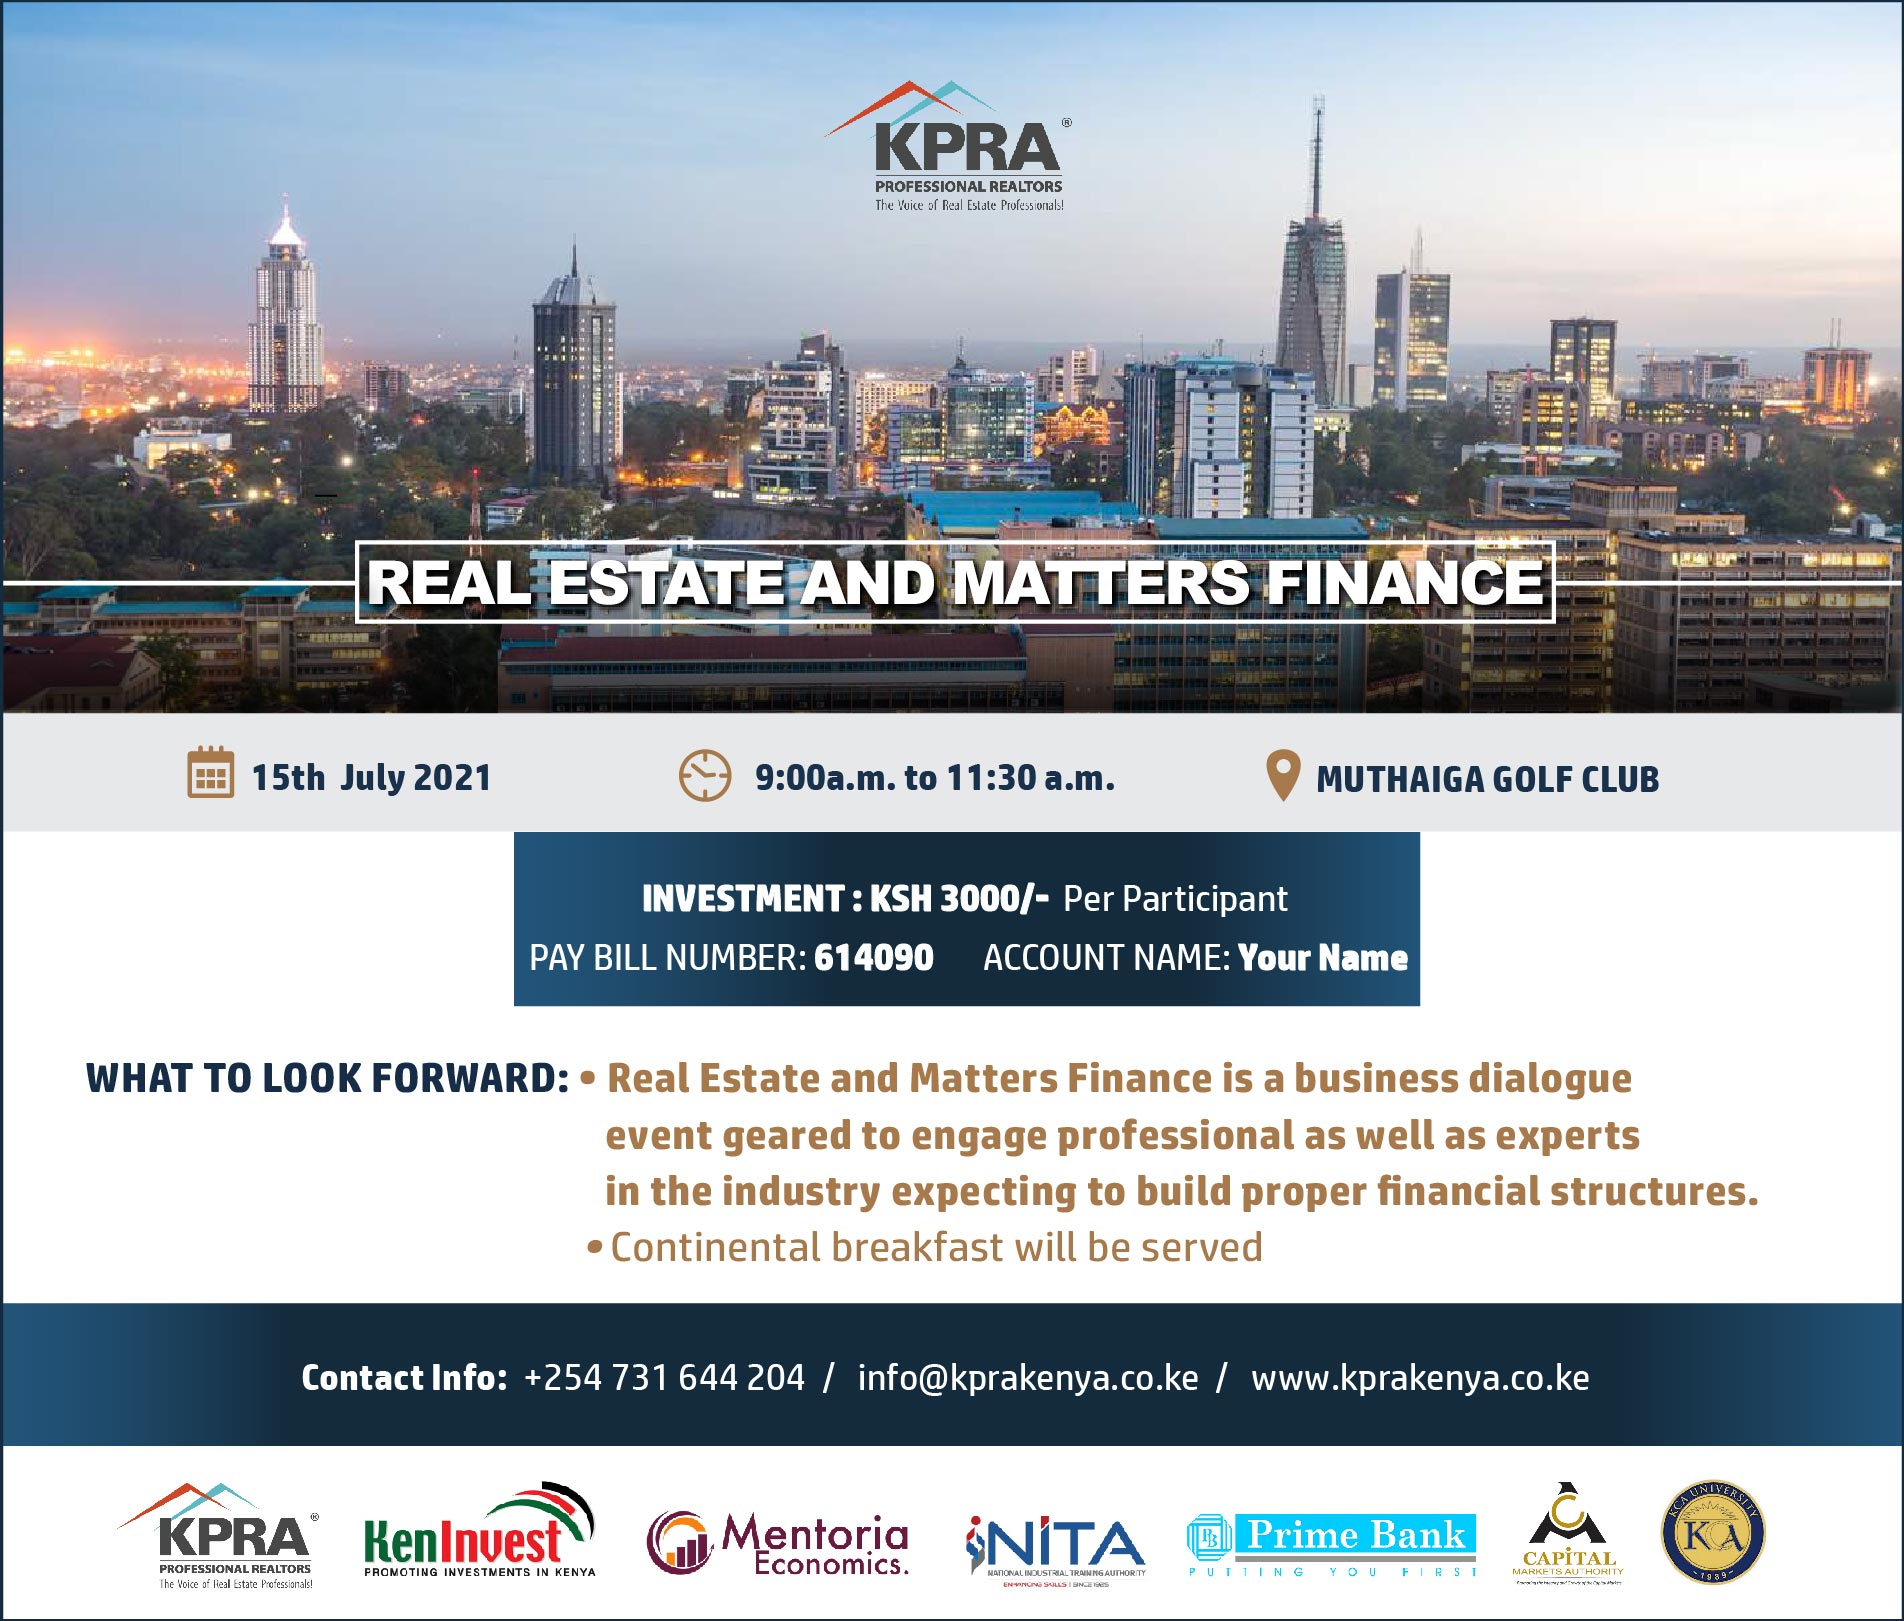 Real Estate and Matters Finance